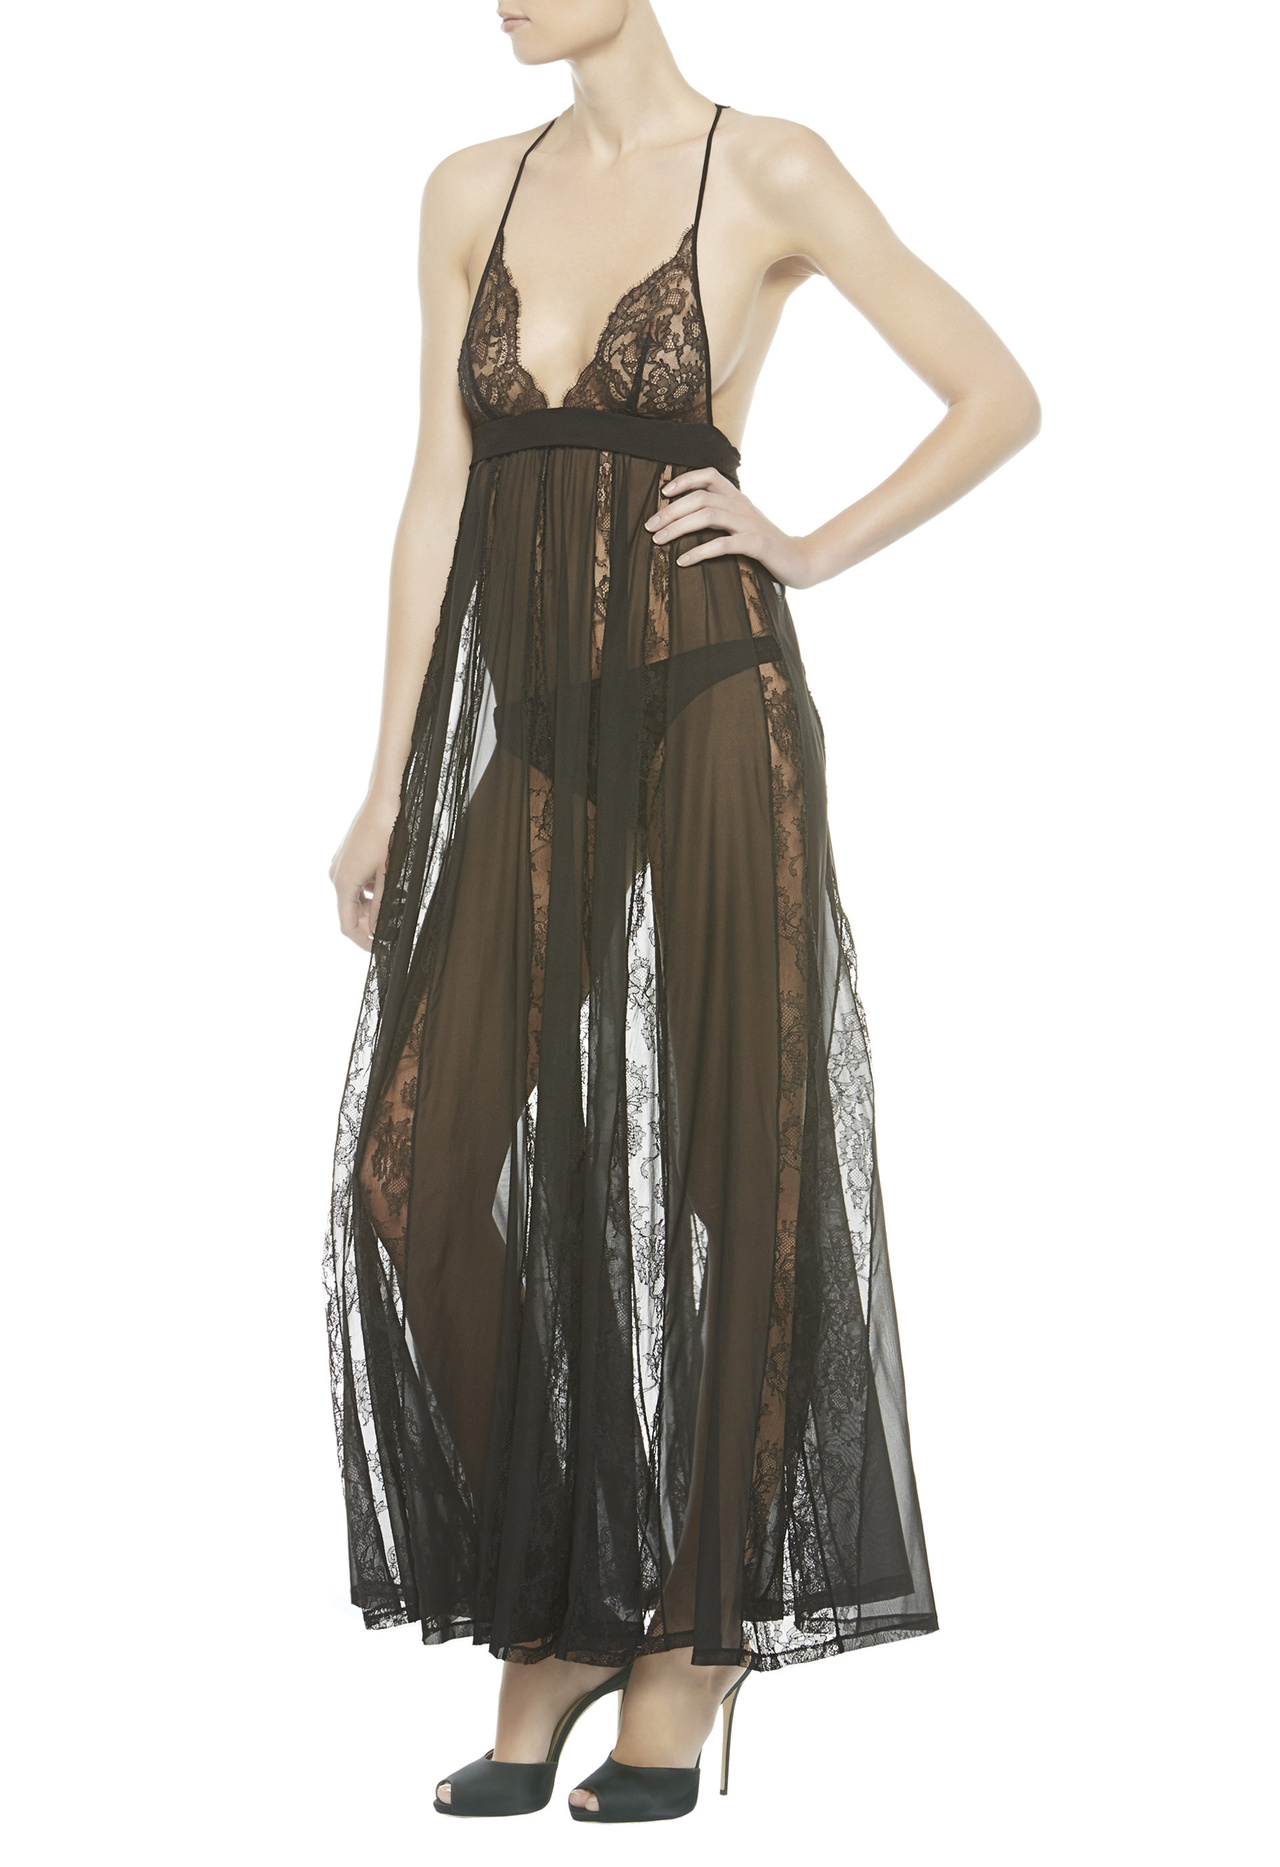 Babydoll: http://www.laperla.com/us/catalog/product/view/_ignore_category/1/id/110262/s/uscfilpd0019455